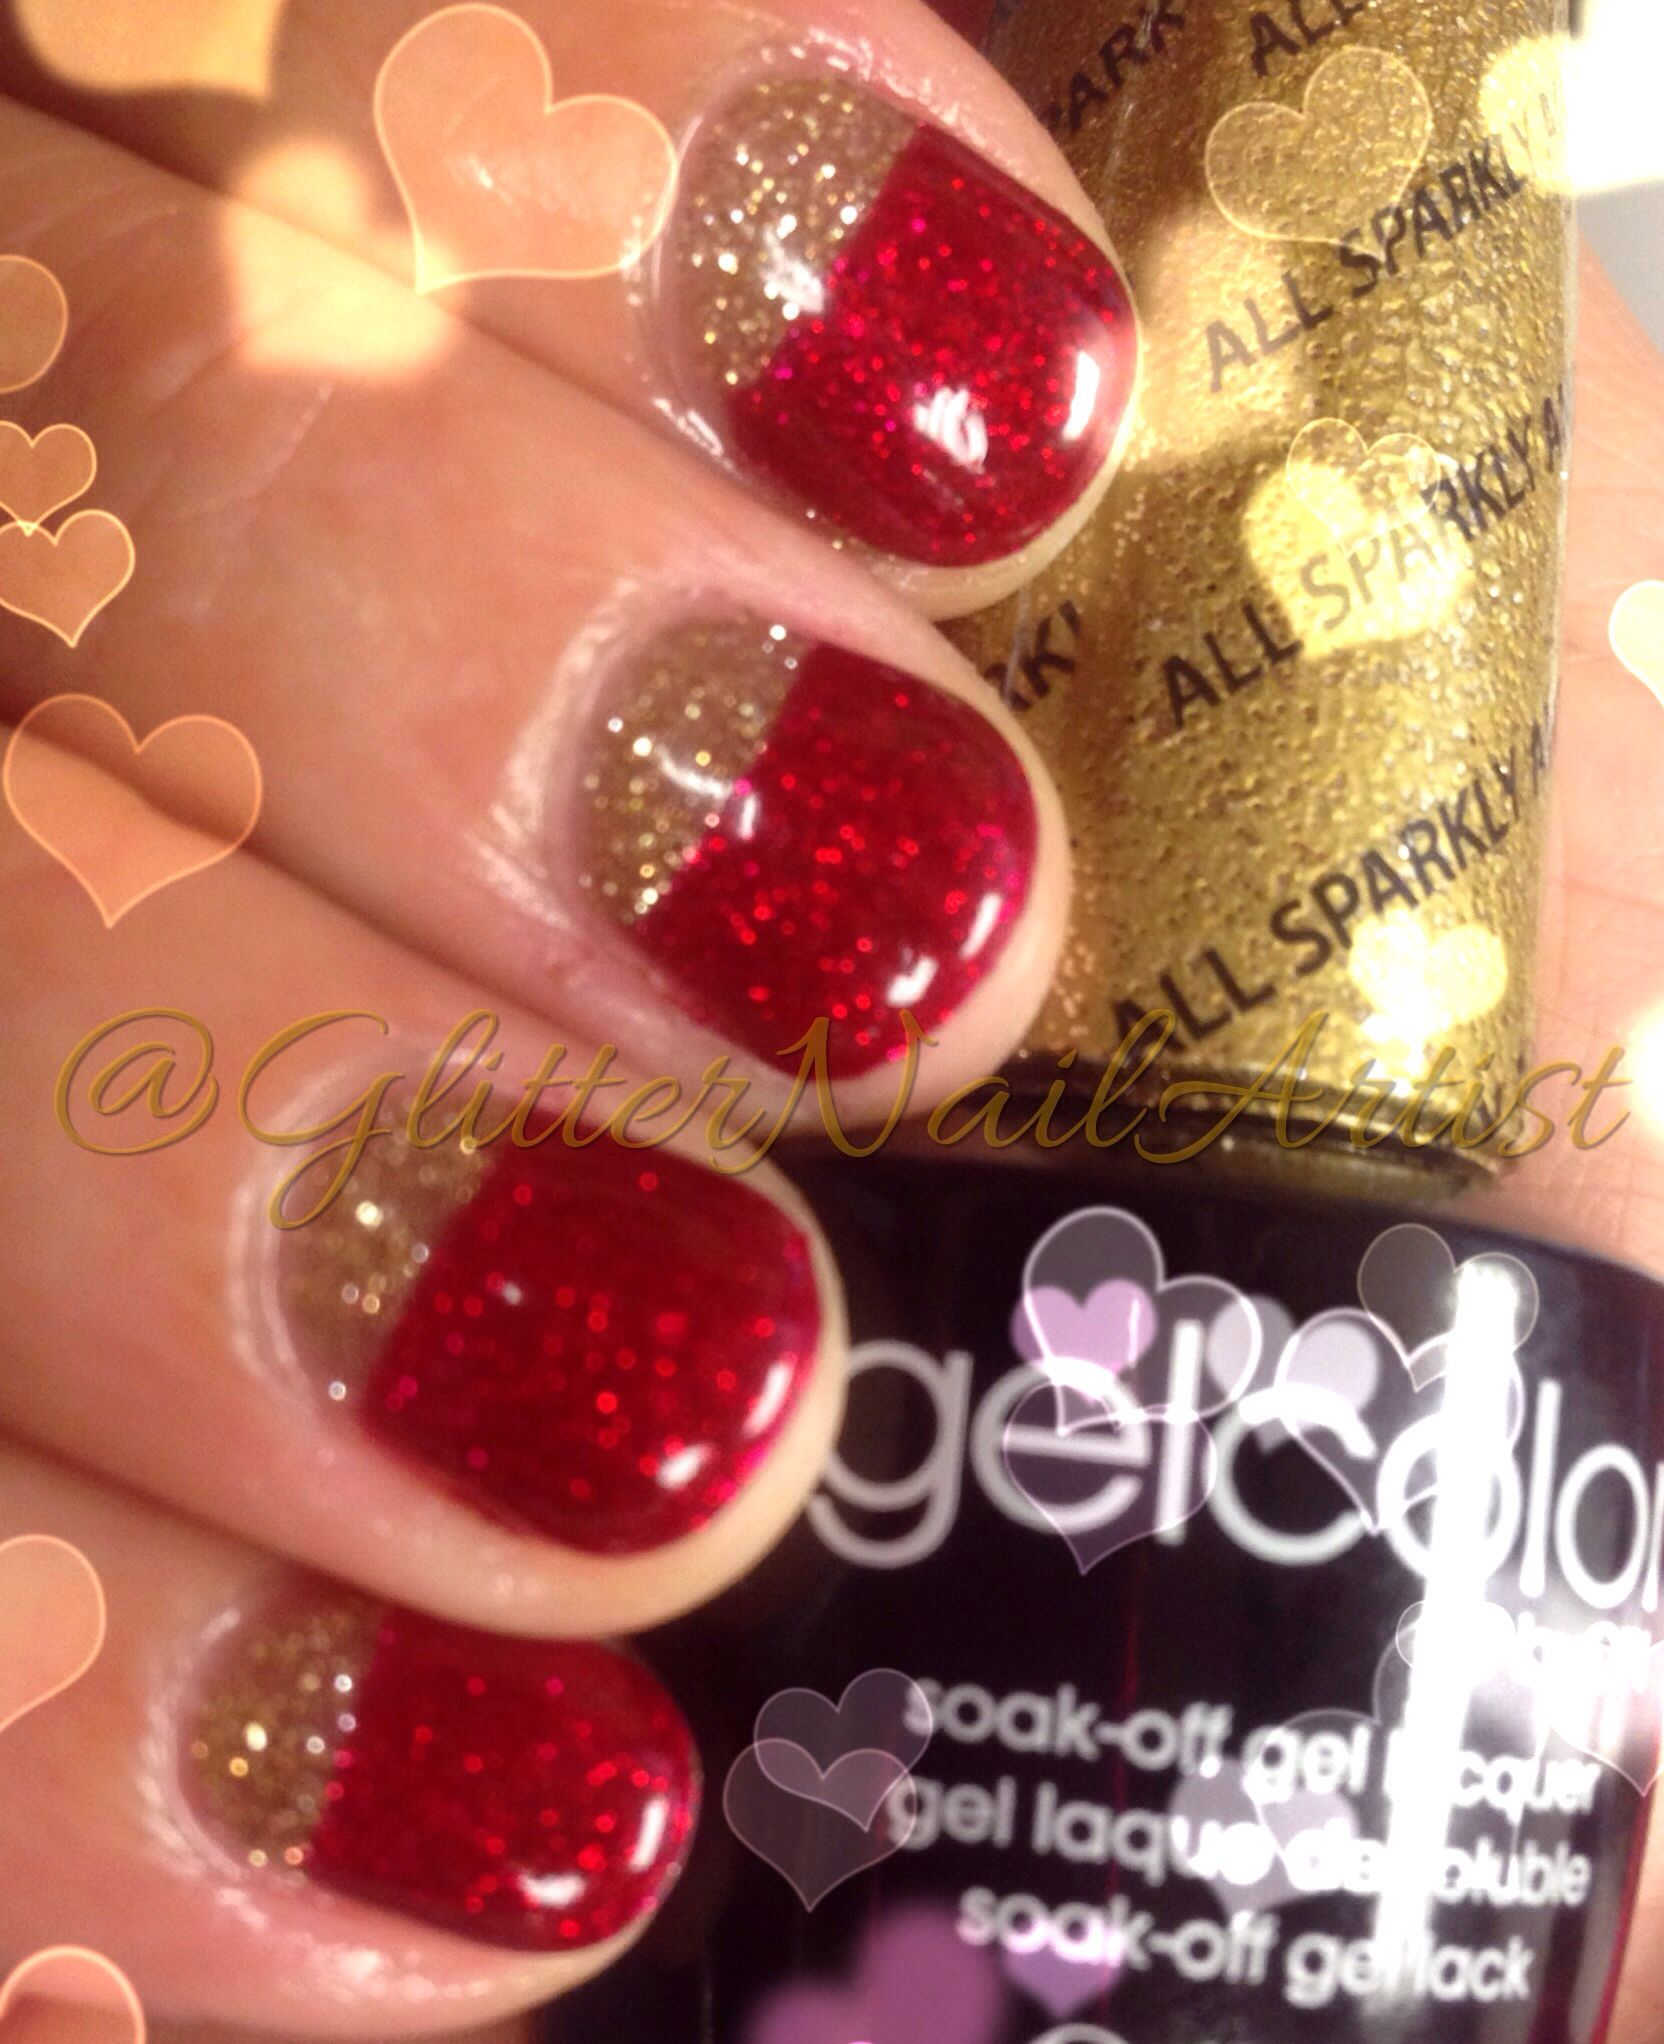 reverse french manicure | opi gelcolor: all sparkly & gold, gelish